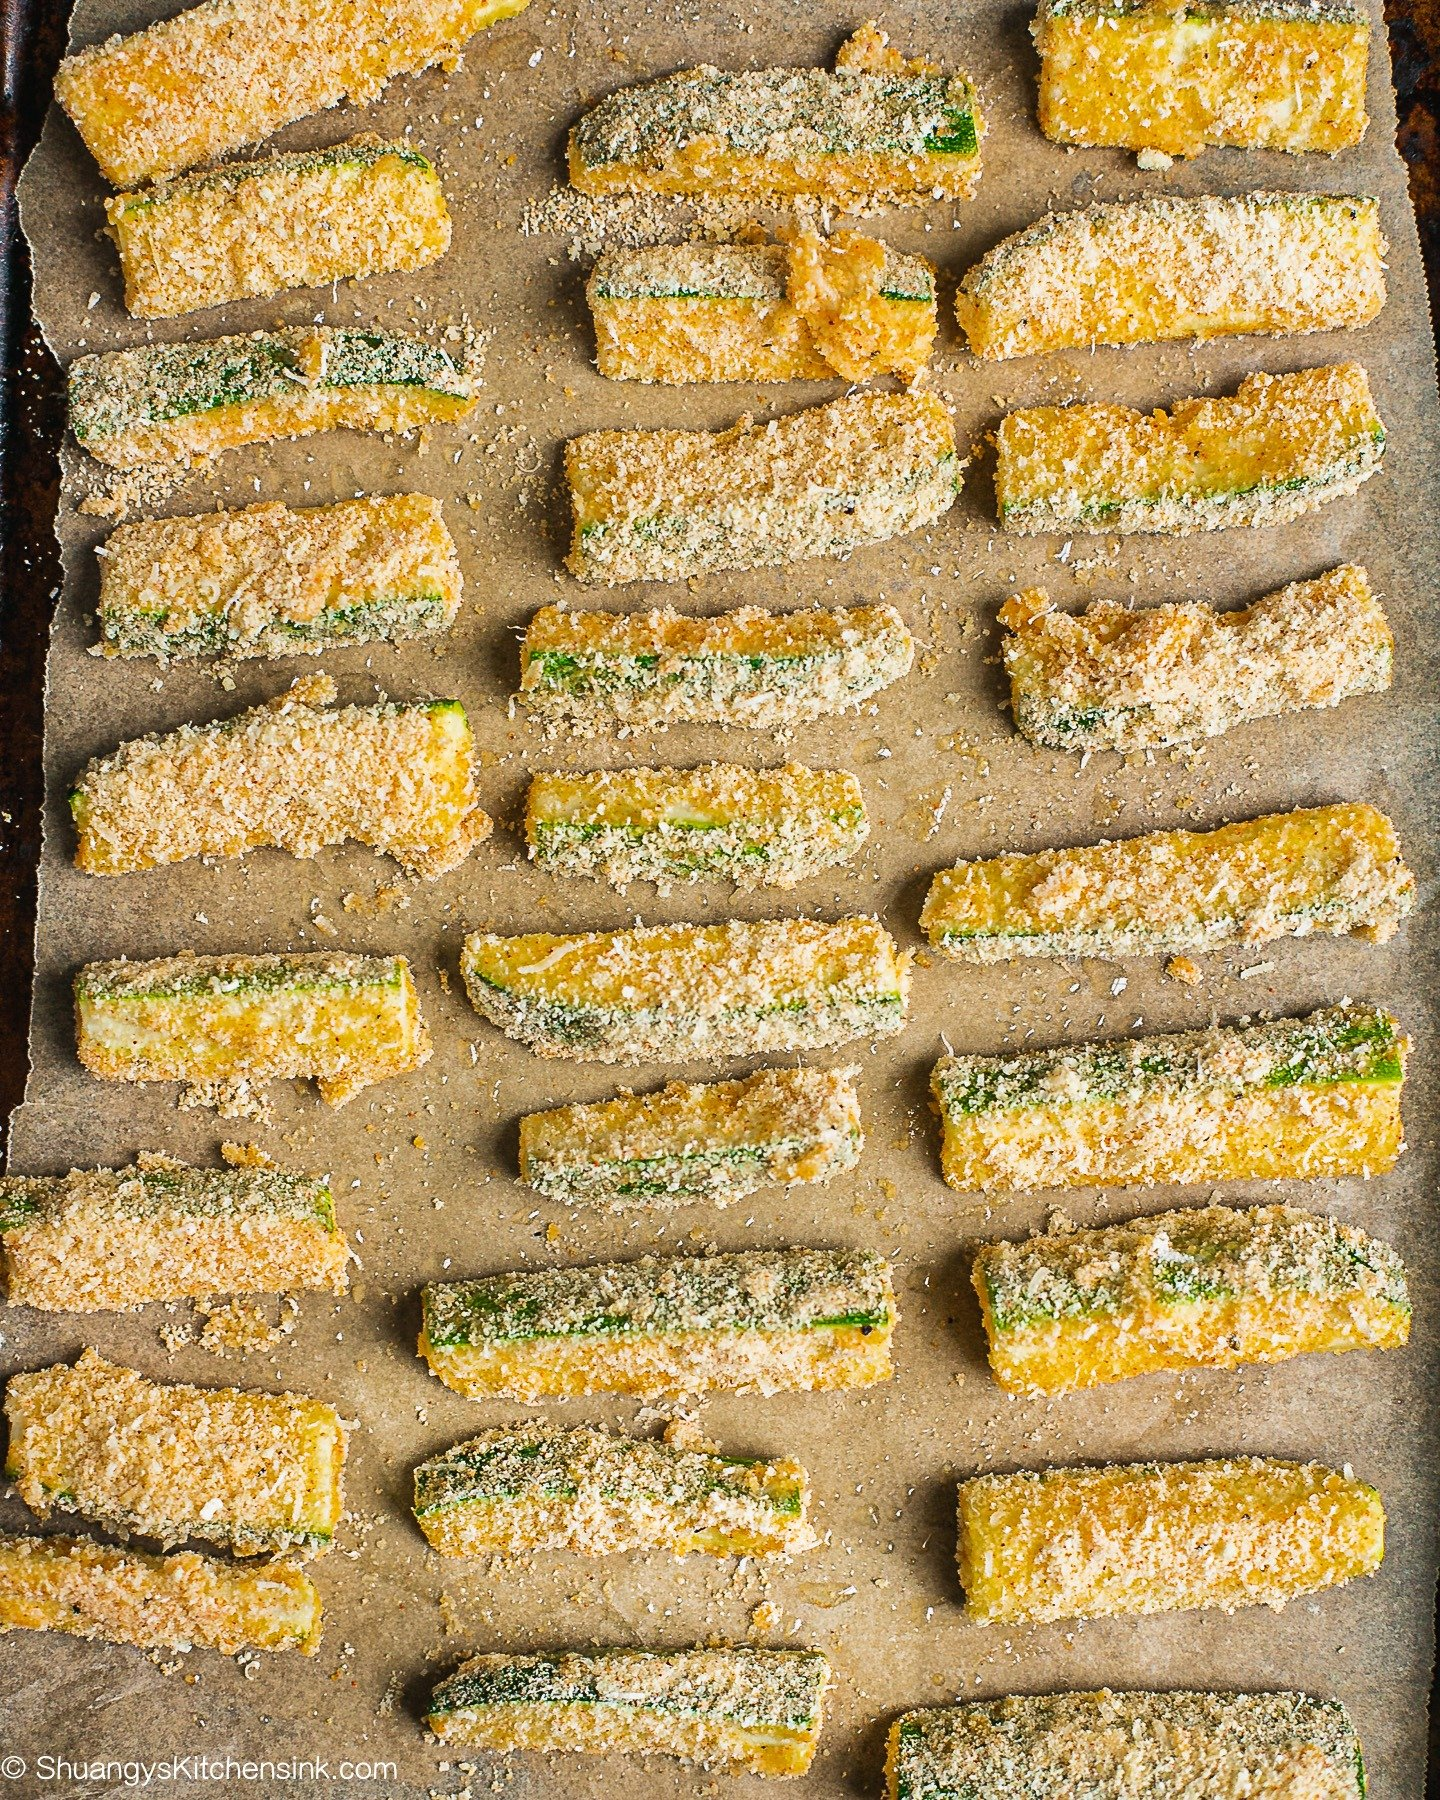 Coated zucchini fries on a baking tray ready to hit the oven